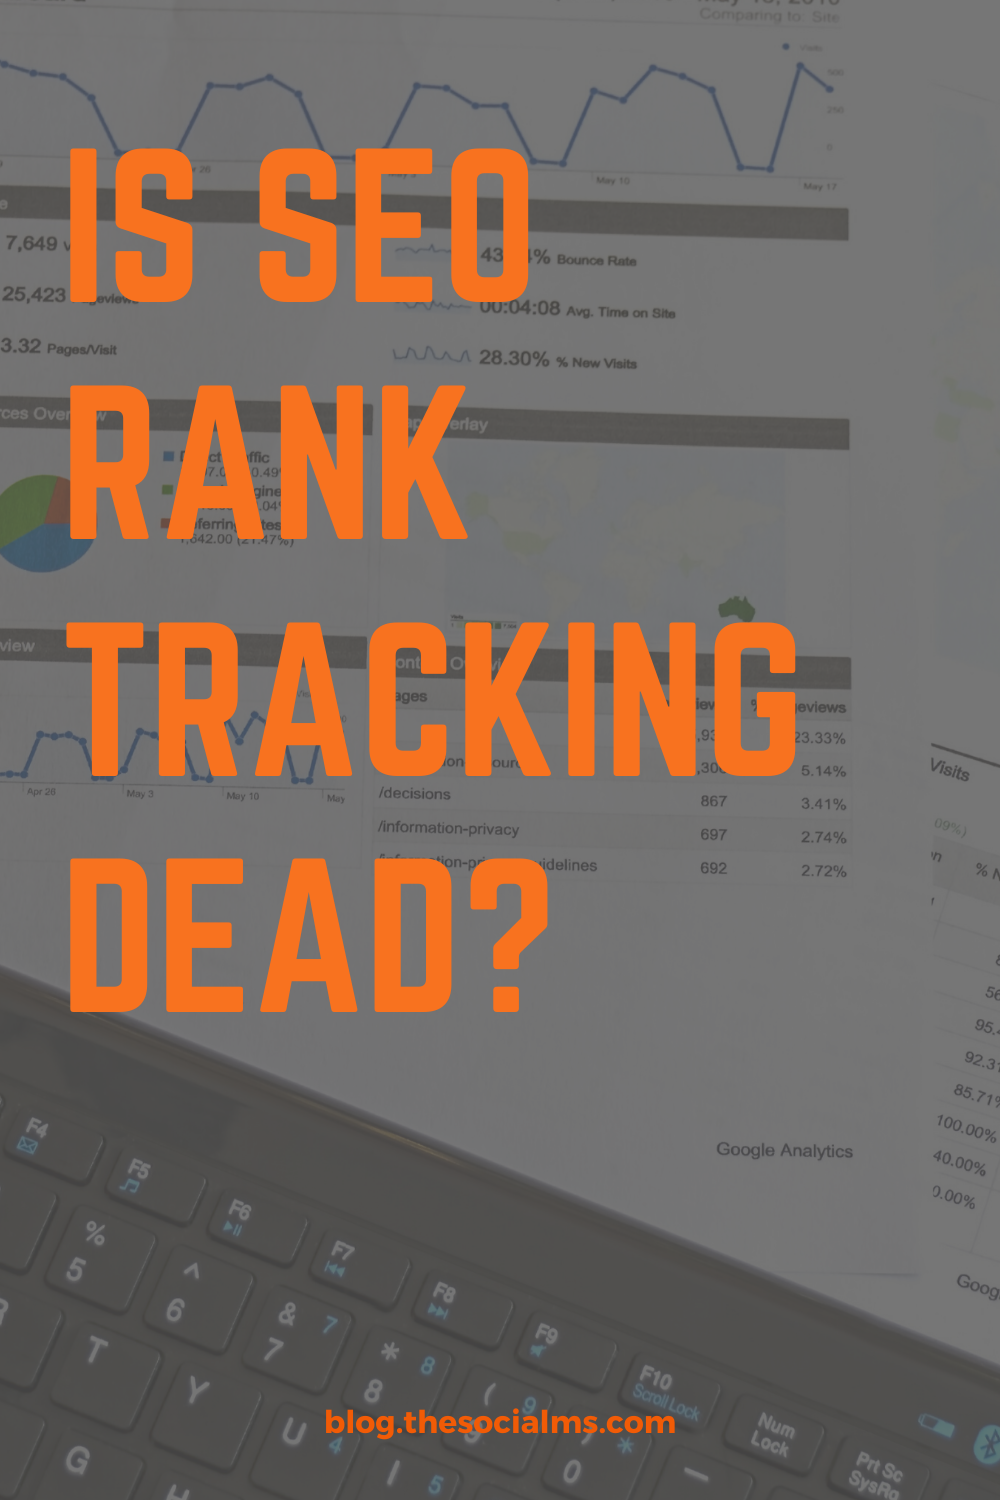 Is rank tracking dead? Rank tracking as we used to know it, is dead! Here is how Rank tracking is reinvented #seo #seotactics #seotips #ranktracking #blogtraffic #bloggingtips #smallbusinessmarketing #searchengineoptimization